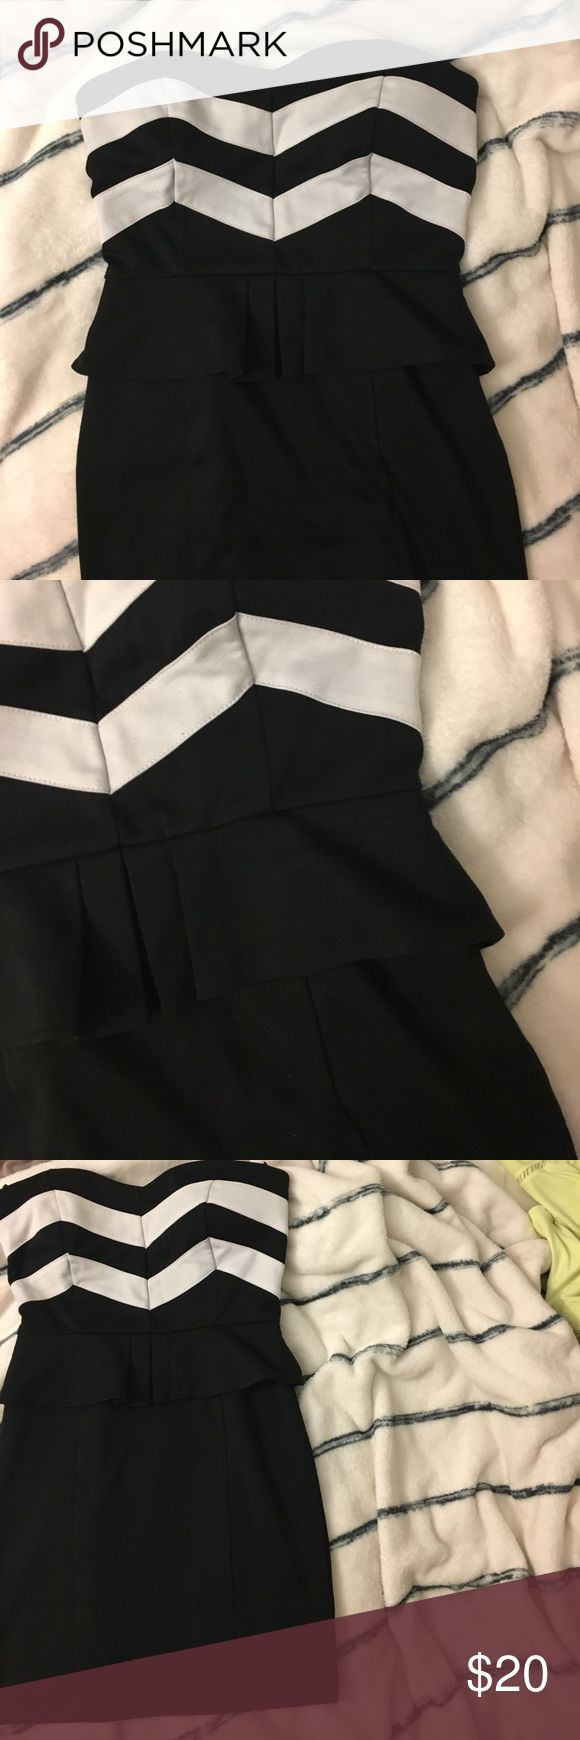 Black and white mini dress Mini dress with black and white chevron design. Fits like a peplum dress. Work only a couple of times. Forever 21 Dresses Mini